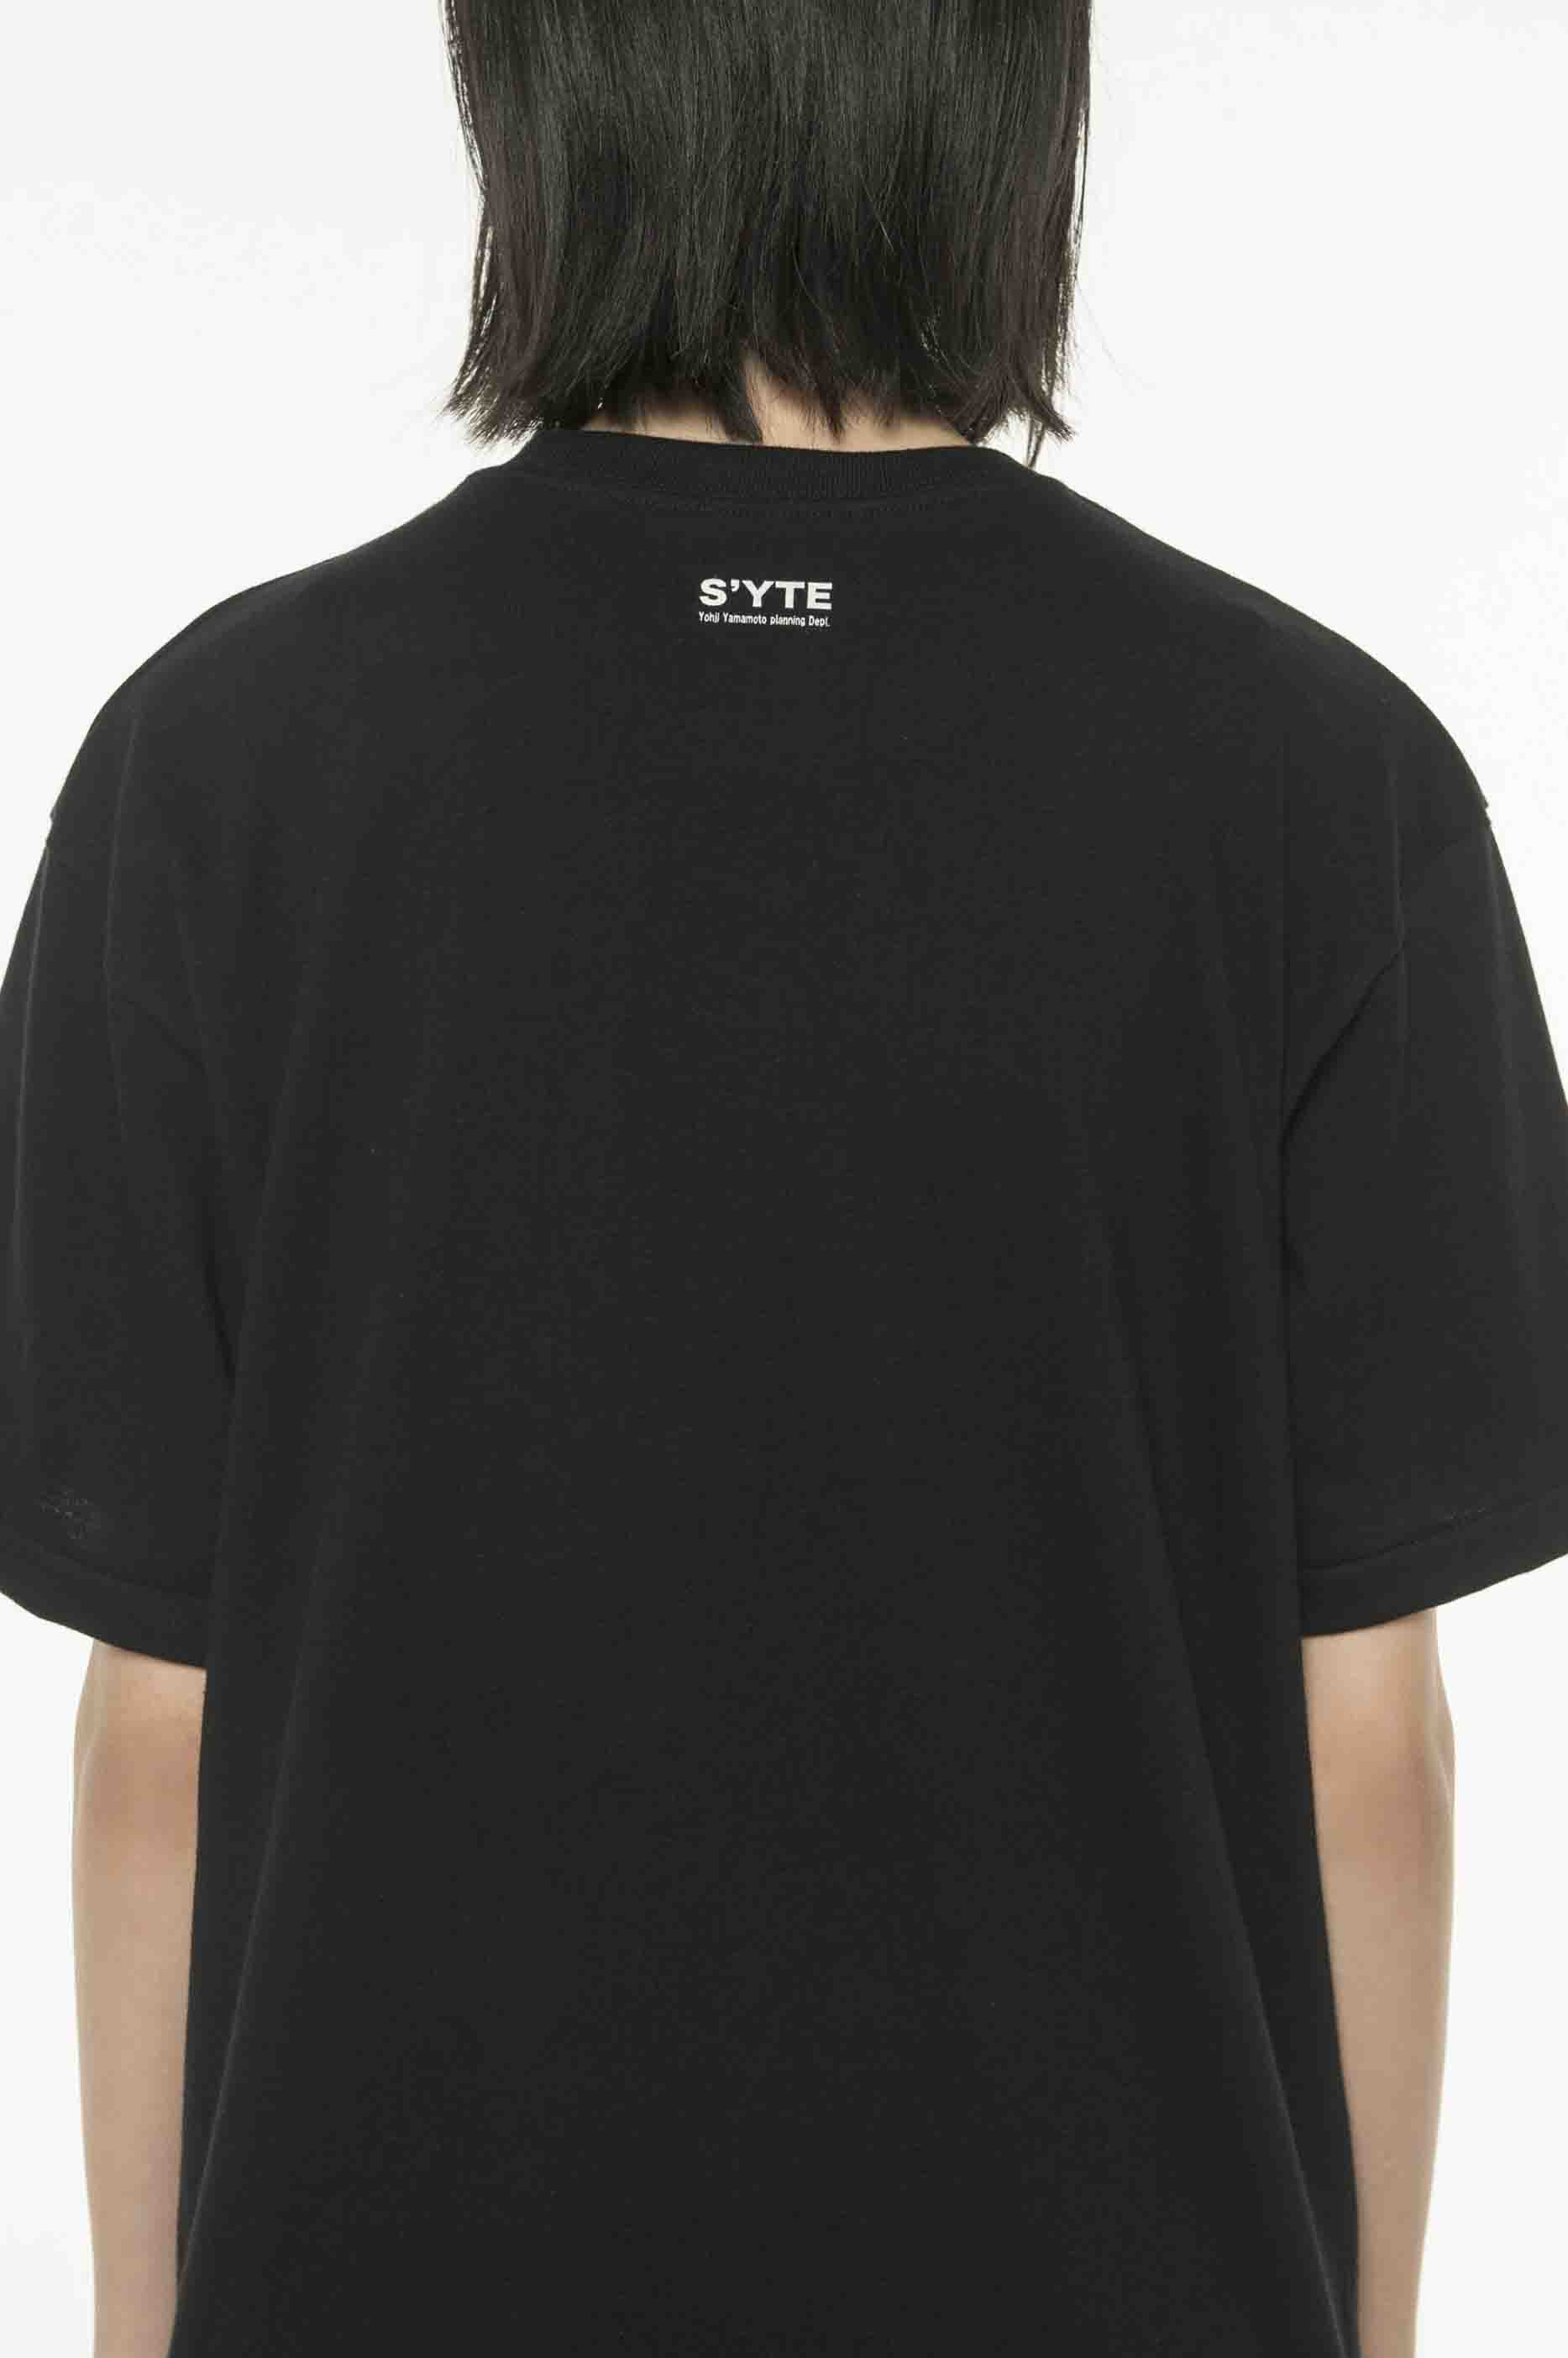 20/CottonJersey S'YTE Songs T-shirt